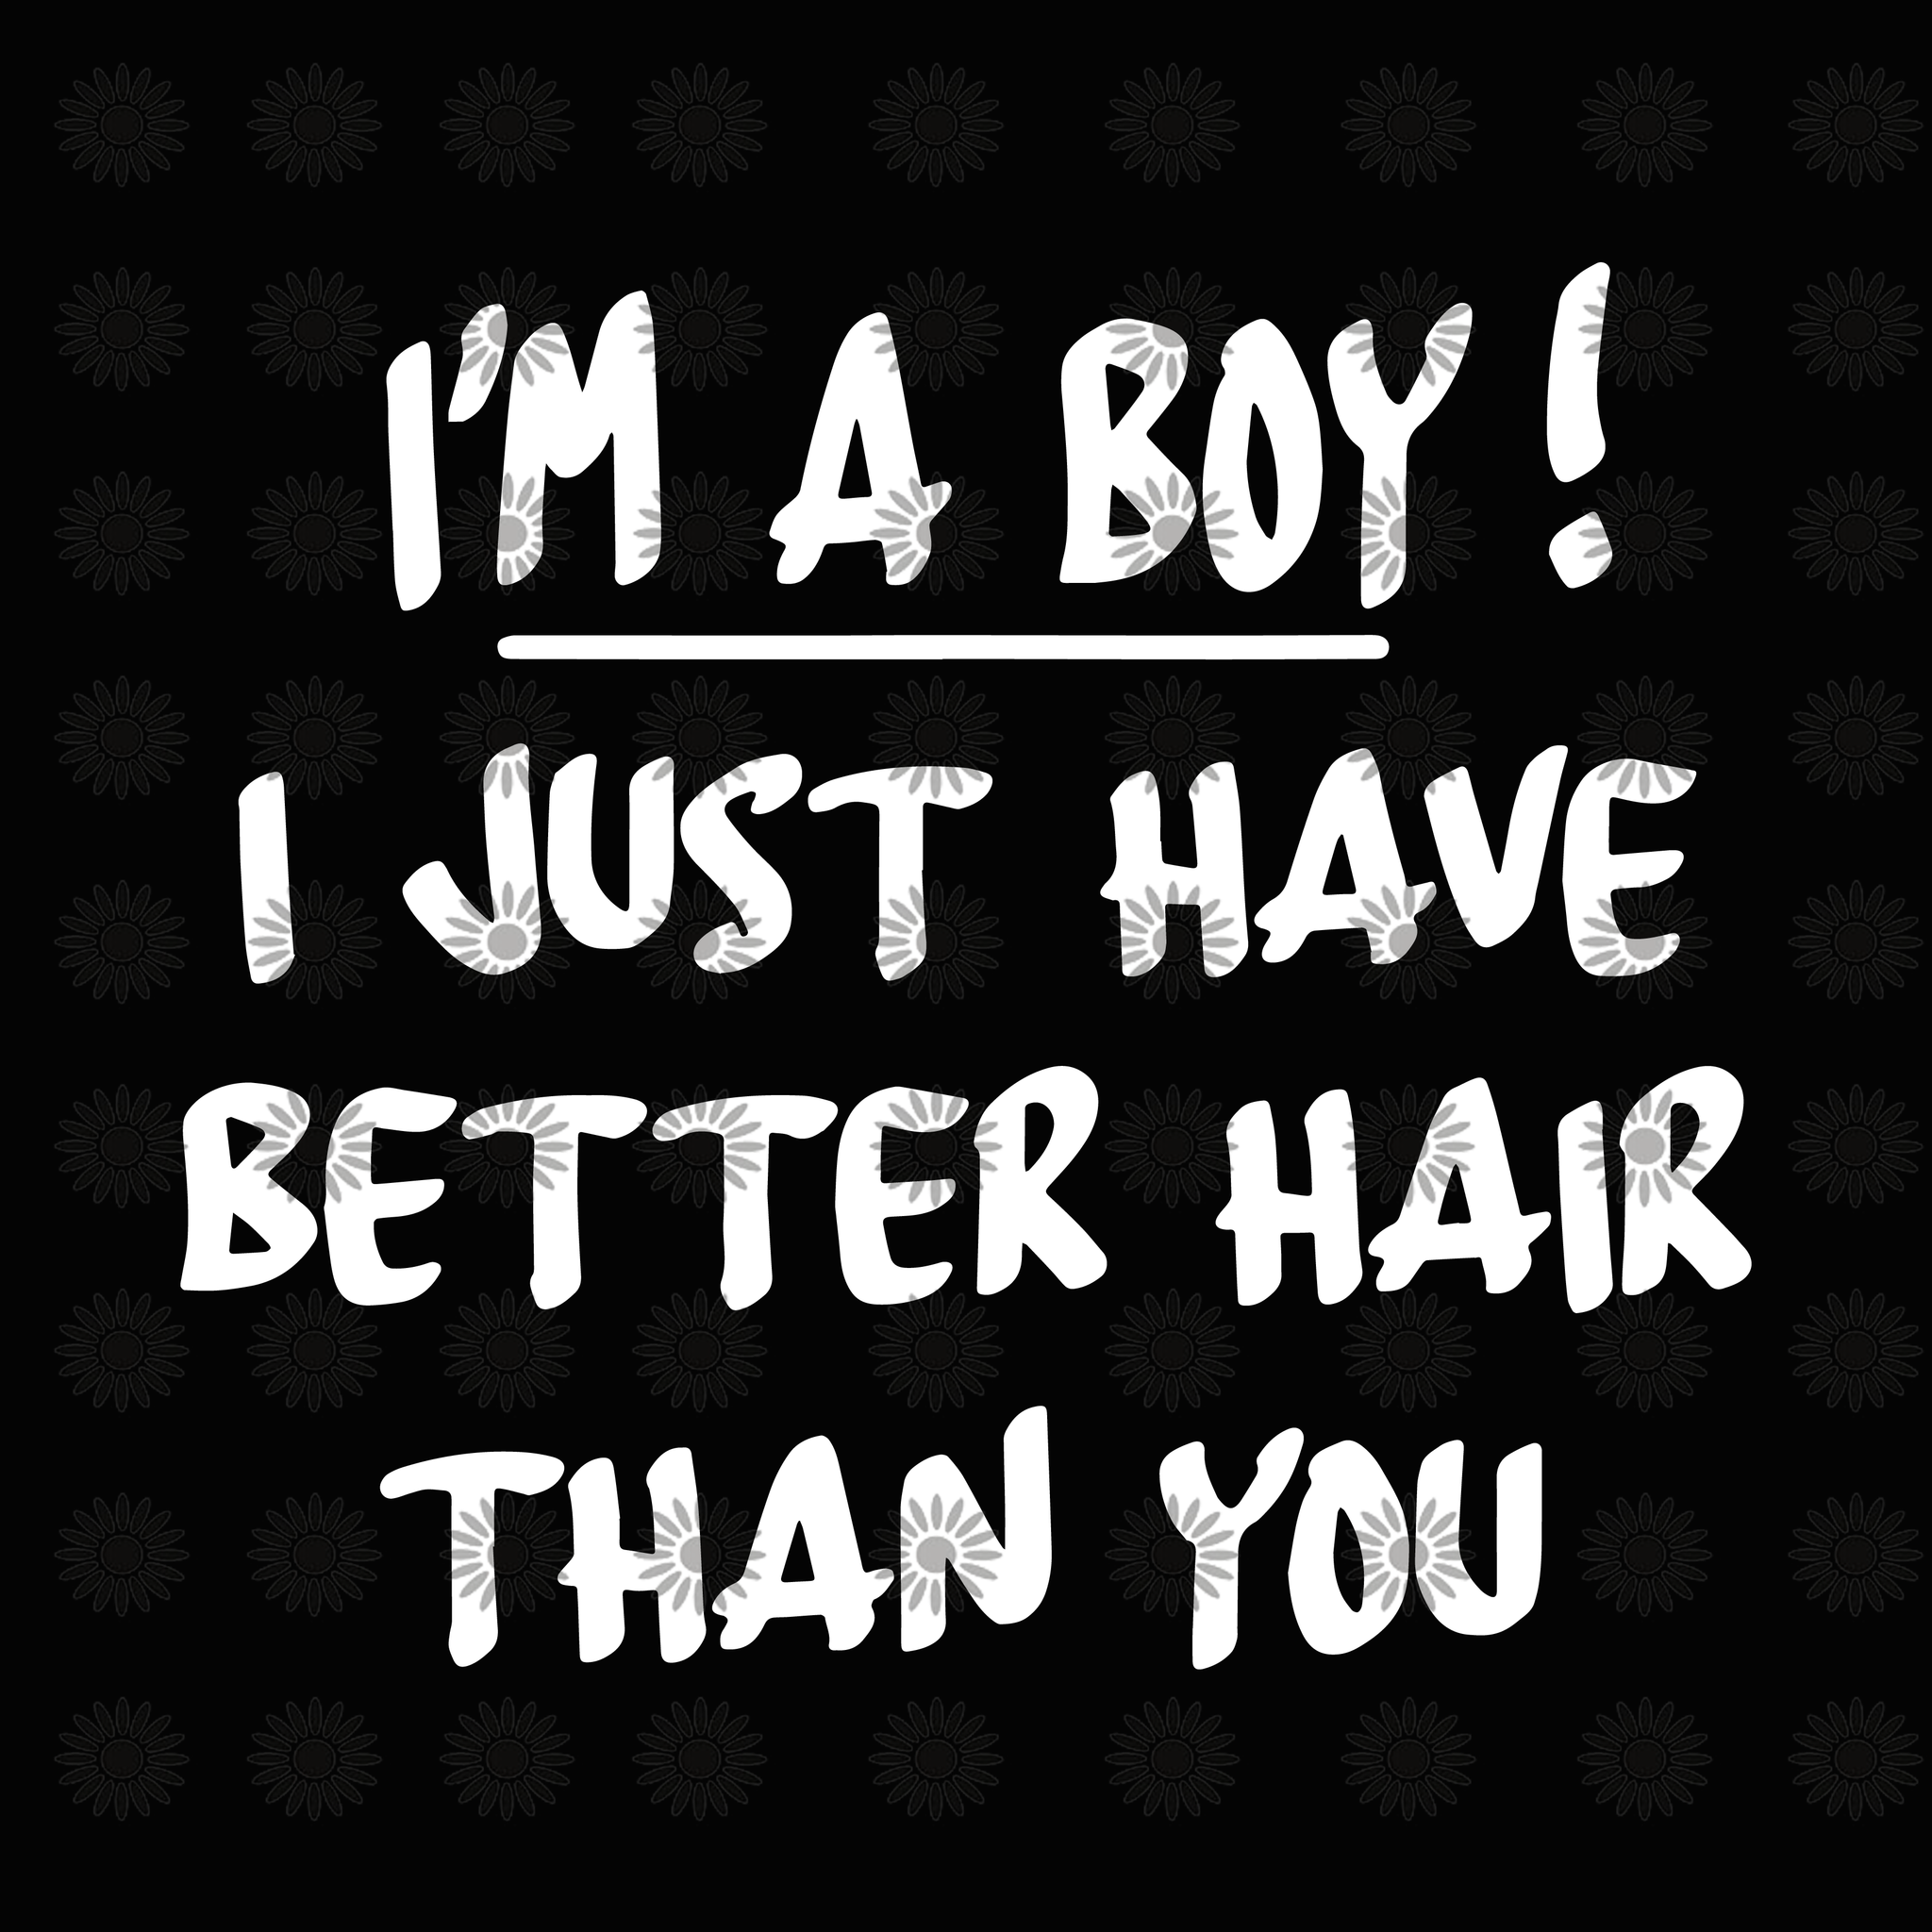 I'm a boy I just have better hair than you svg, I'm a boy I just have better hair than you, funny quotes, svg, png, eps, dxf file